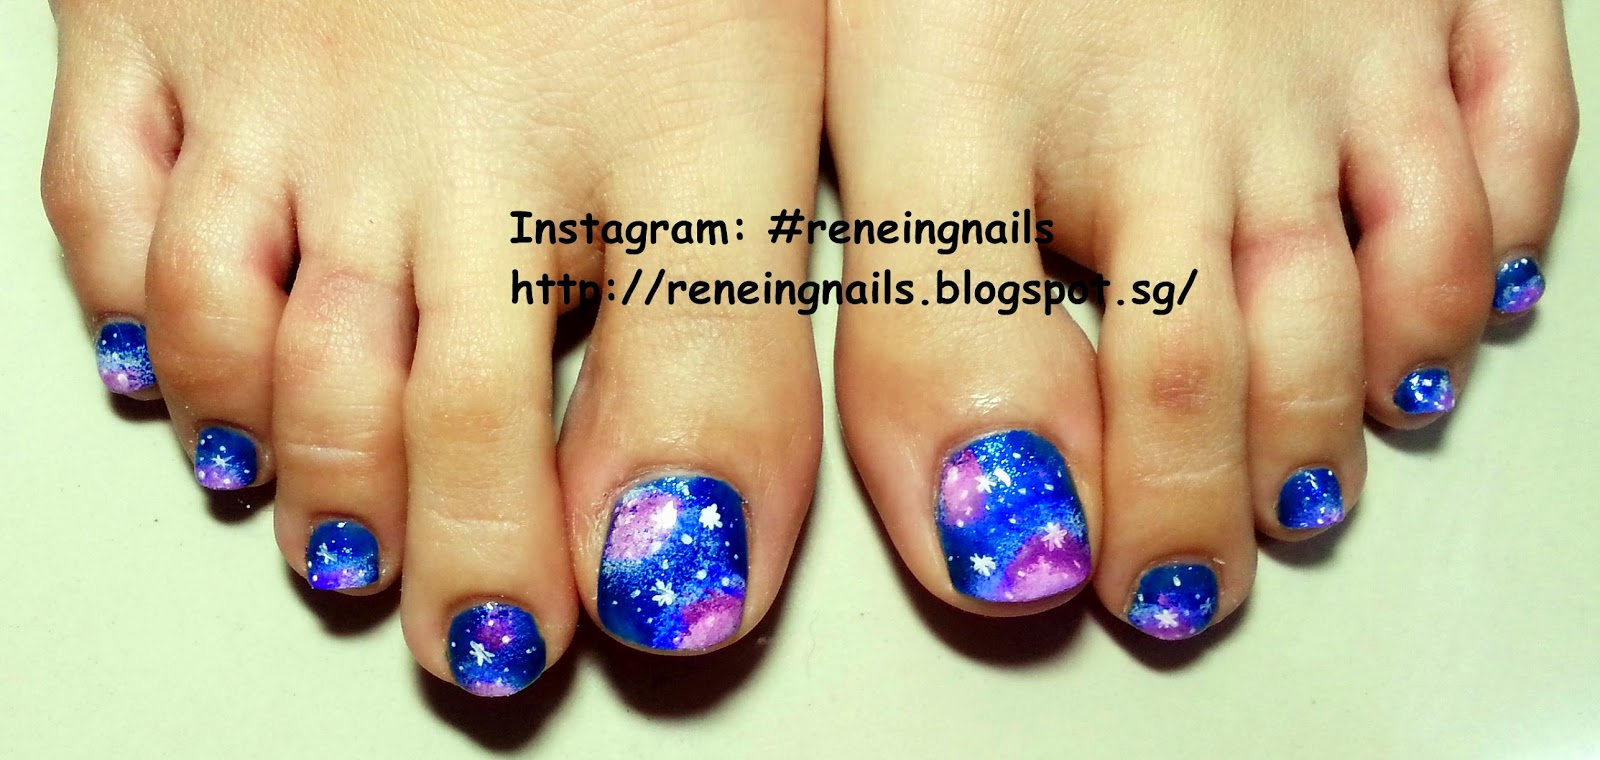 Reneing.Nails: N20035: Galaxy Toe nails for my cousin!